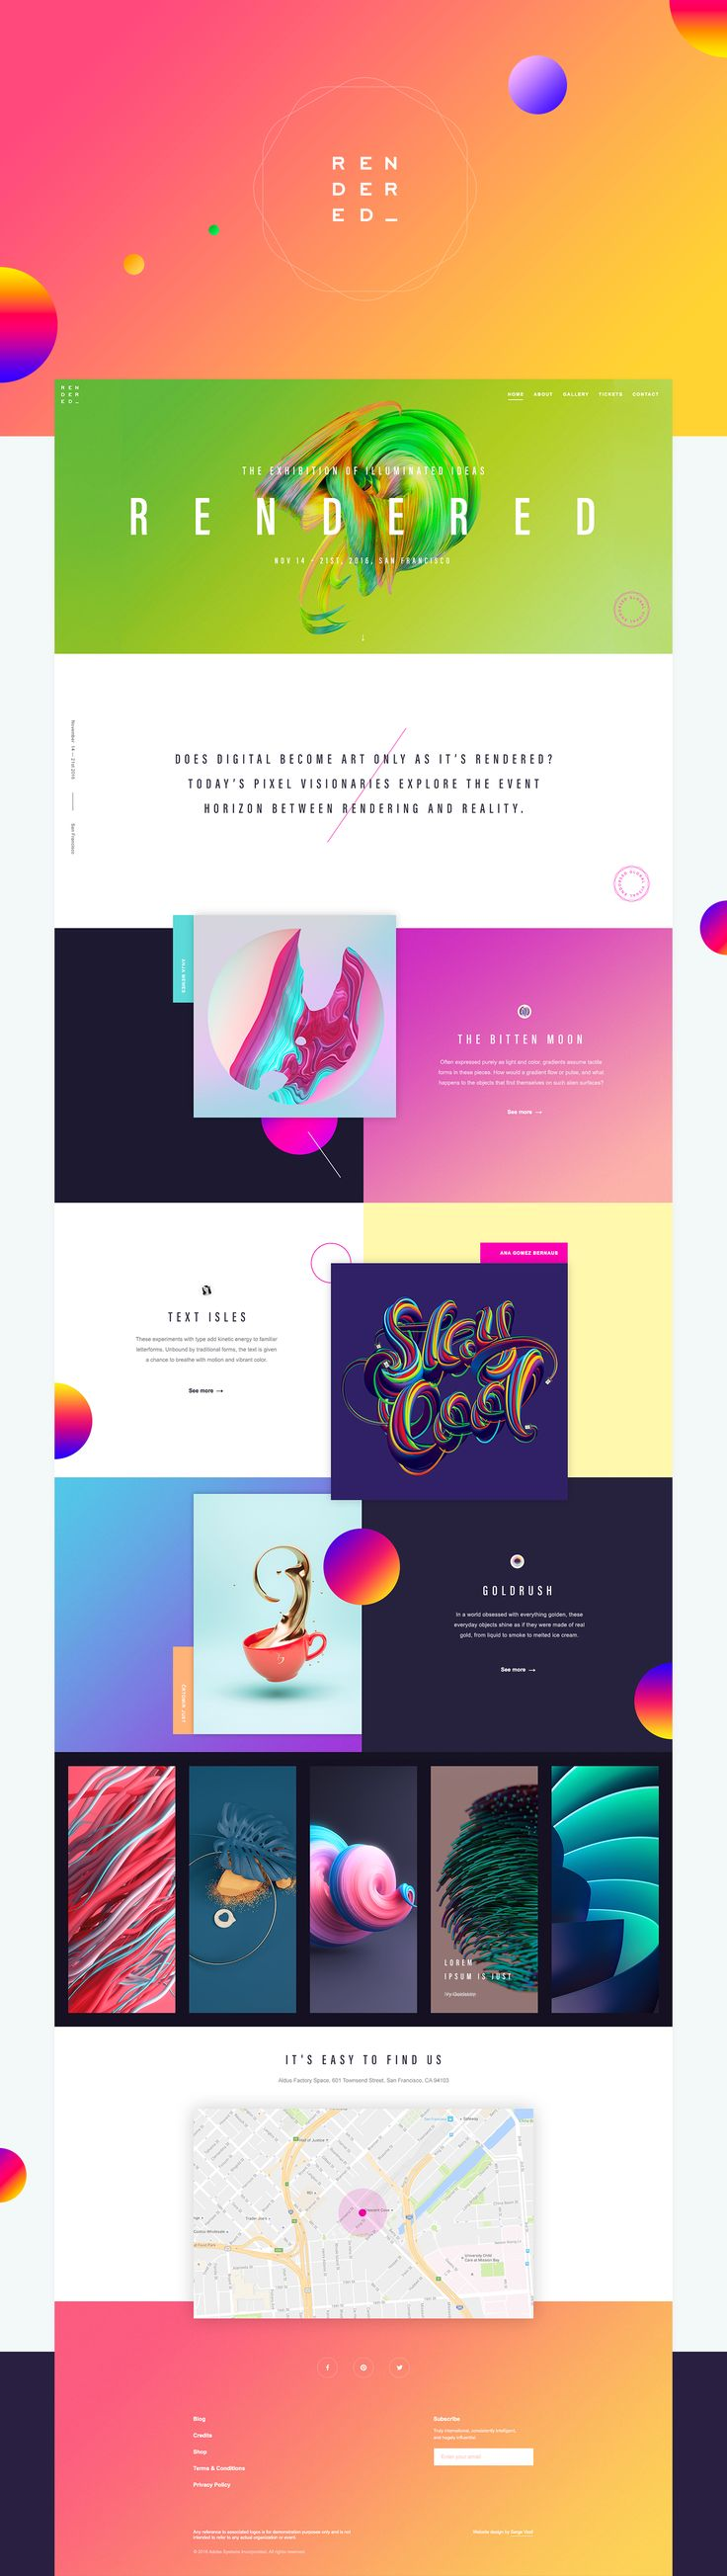 25 Interfaces Fraiches Pour Votre Inspiration Website LayoutWeb